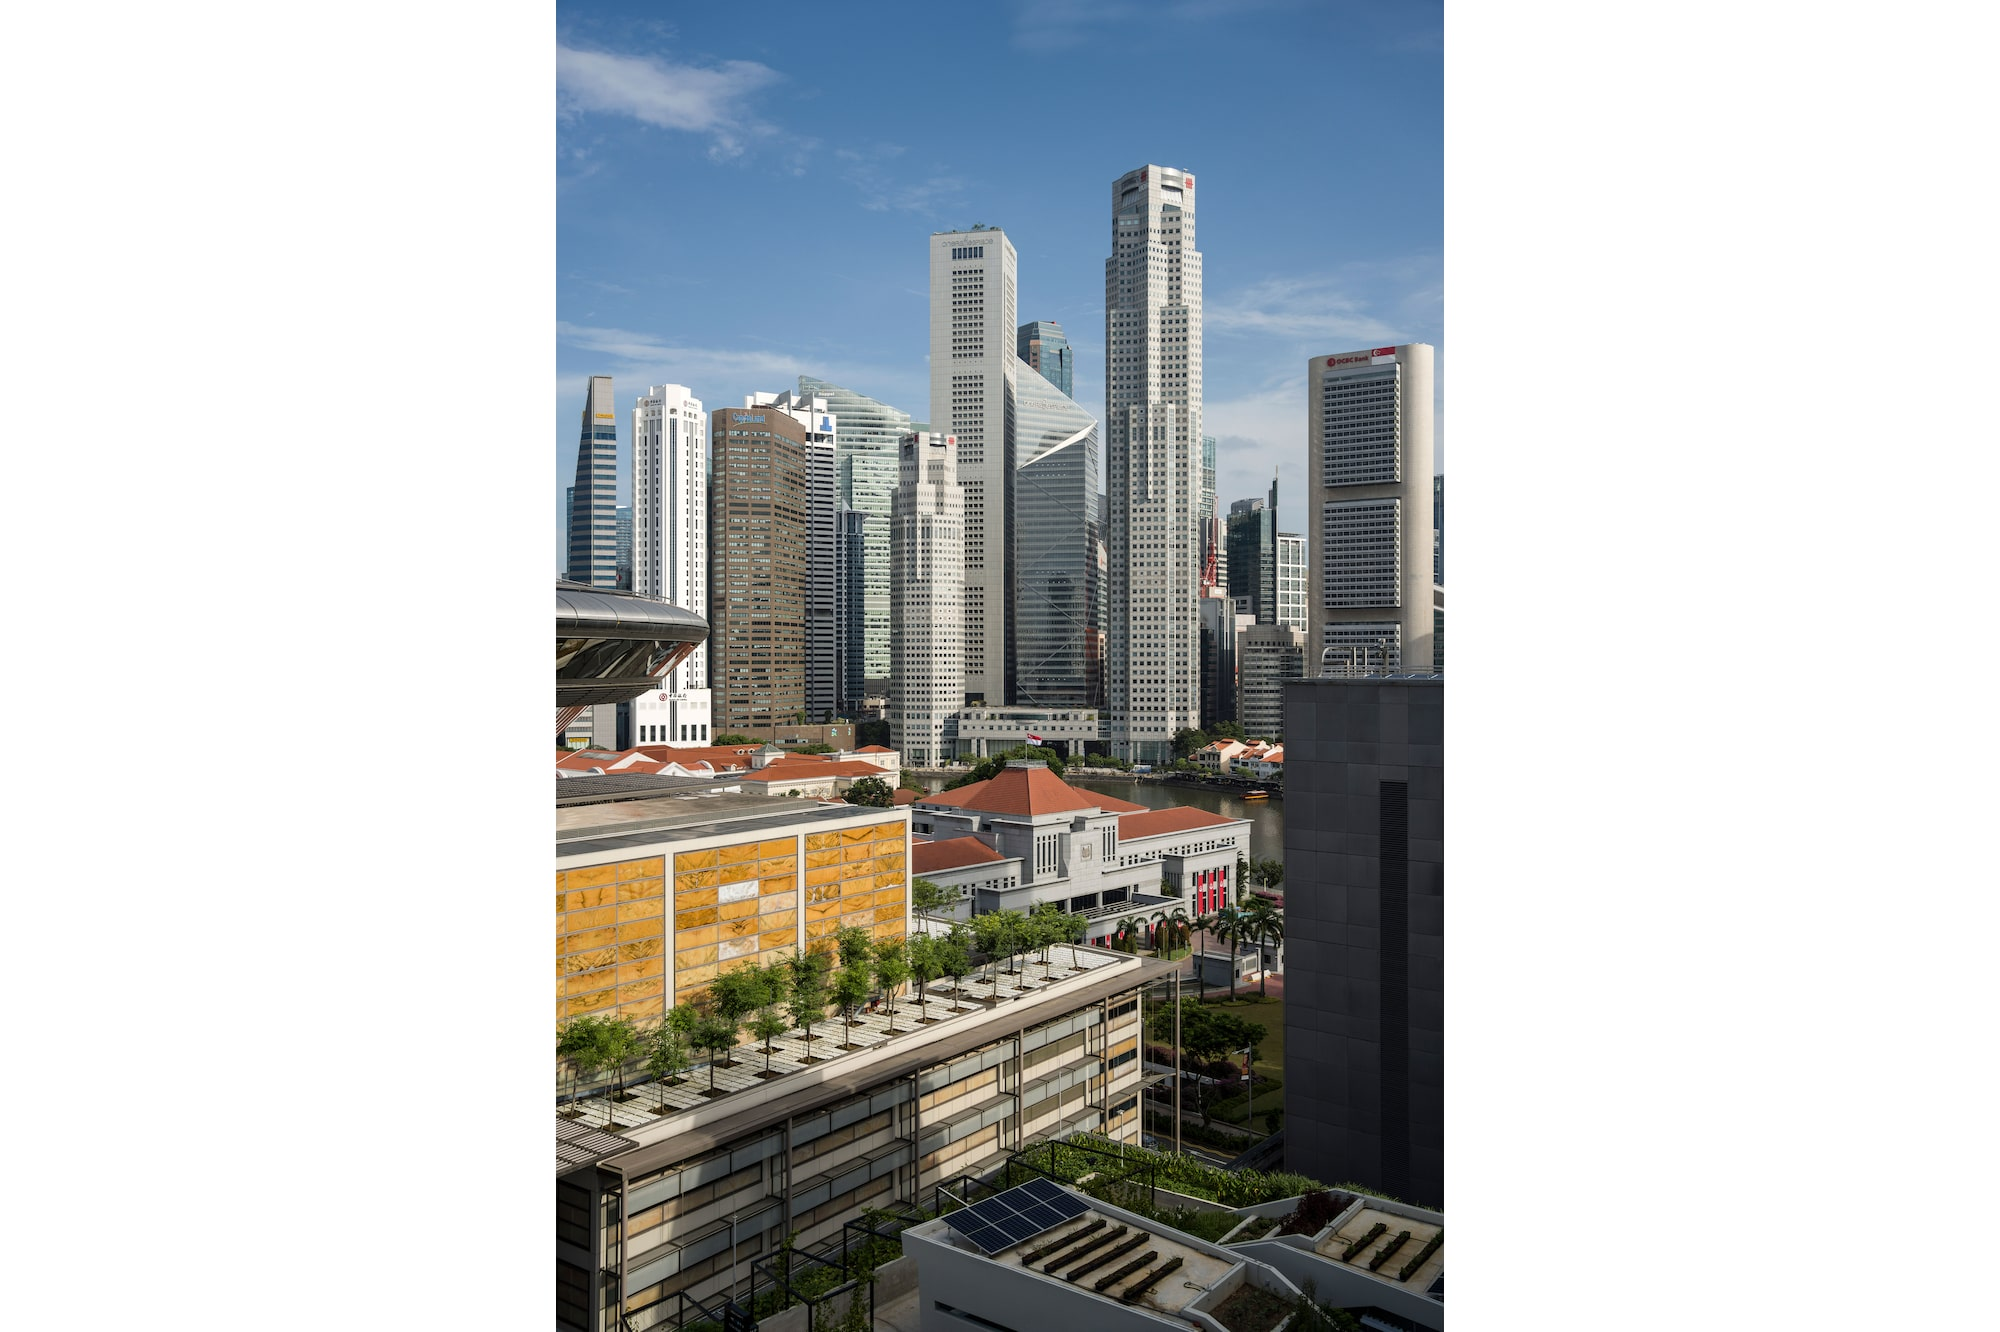 Sony 61-megapixel full frame Alpha 7R IV maximises superb resolution of view of Central Business District (CBD).